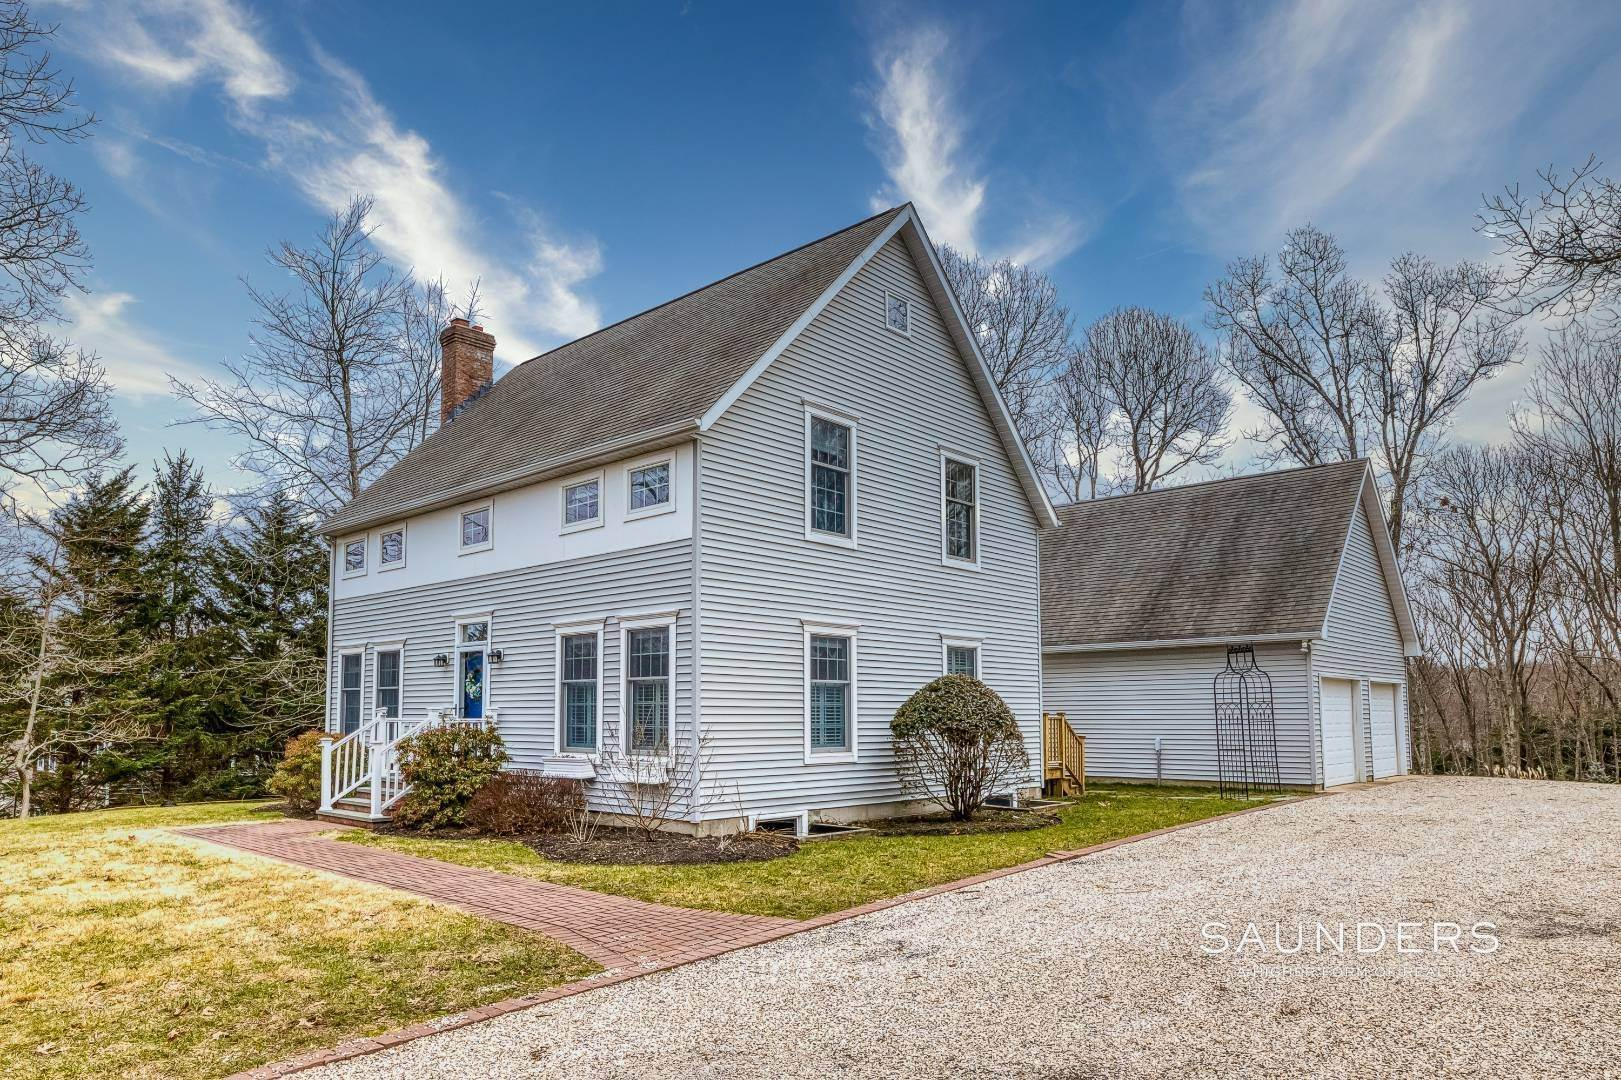 2. Single Family Homes for Sale at Shelter Island Tranquil Traditional With Pool Near Beach 25 Lakeview Drive, Shelter Island, NY 11964